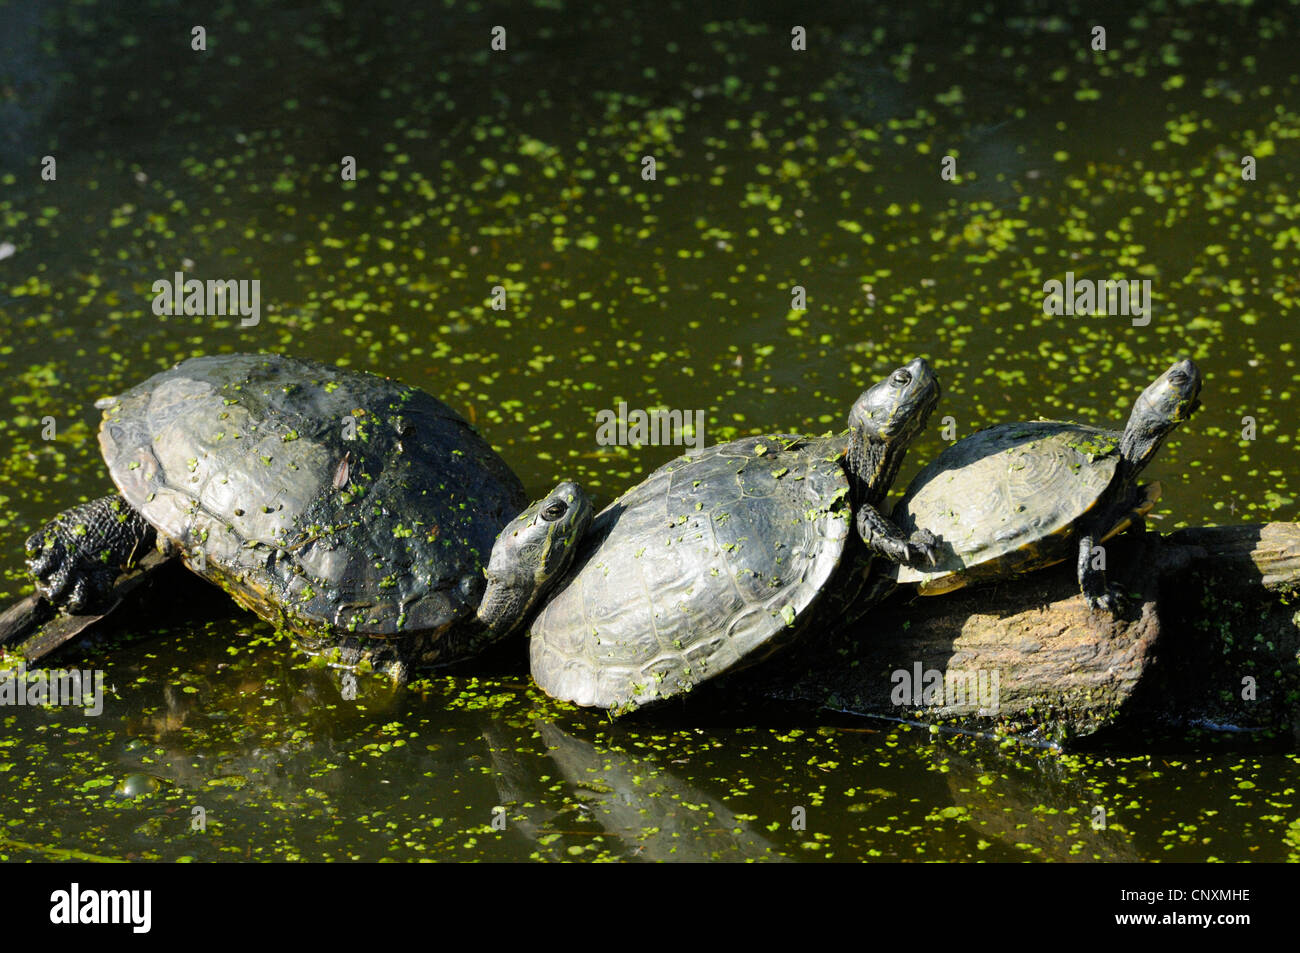 Three red-eared sliders (trachemys scripta elegans) from Florida taking sun on rock, Rhodes animal's park, Moselle,France - Stock Image